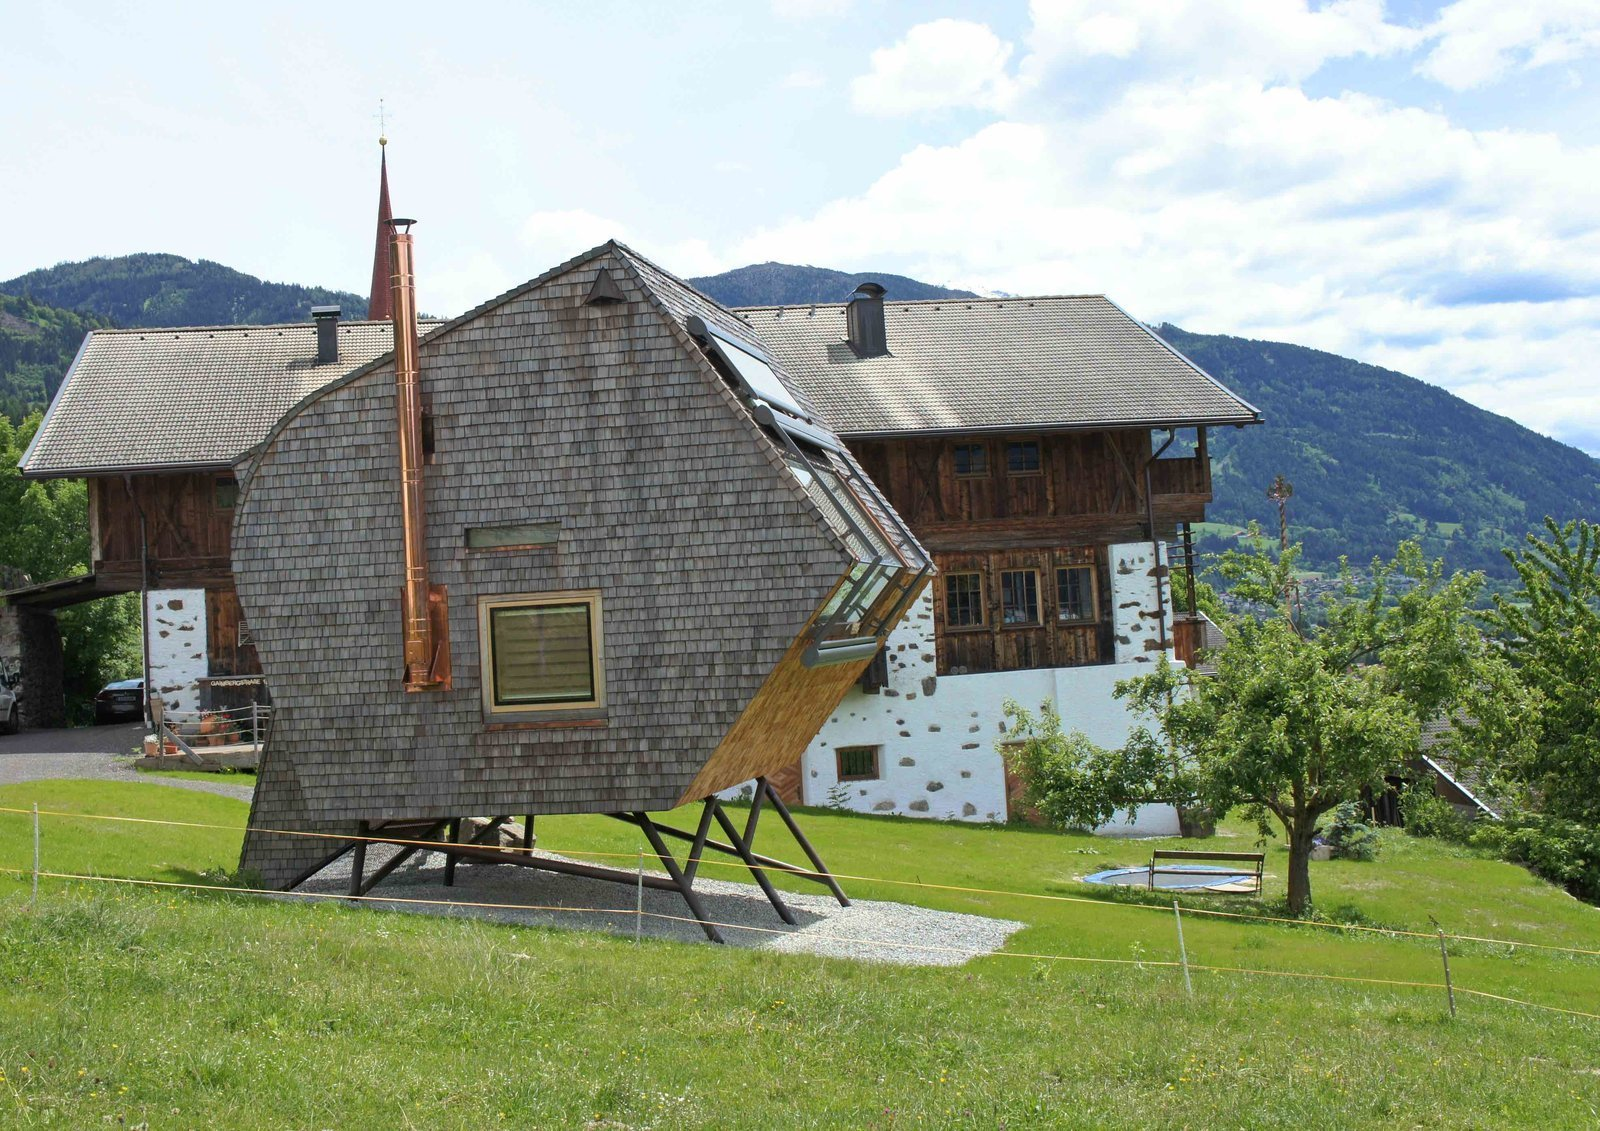 Available for rent through Urlaubsarchitektur, Ufogel's exterior is covered in rustic Austrian-style shingles, but its sharp angles and asymmetrical shape gives it a distinctly futuristic, nest-like look.